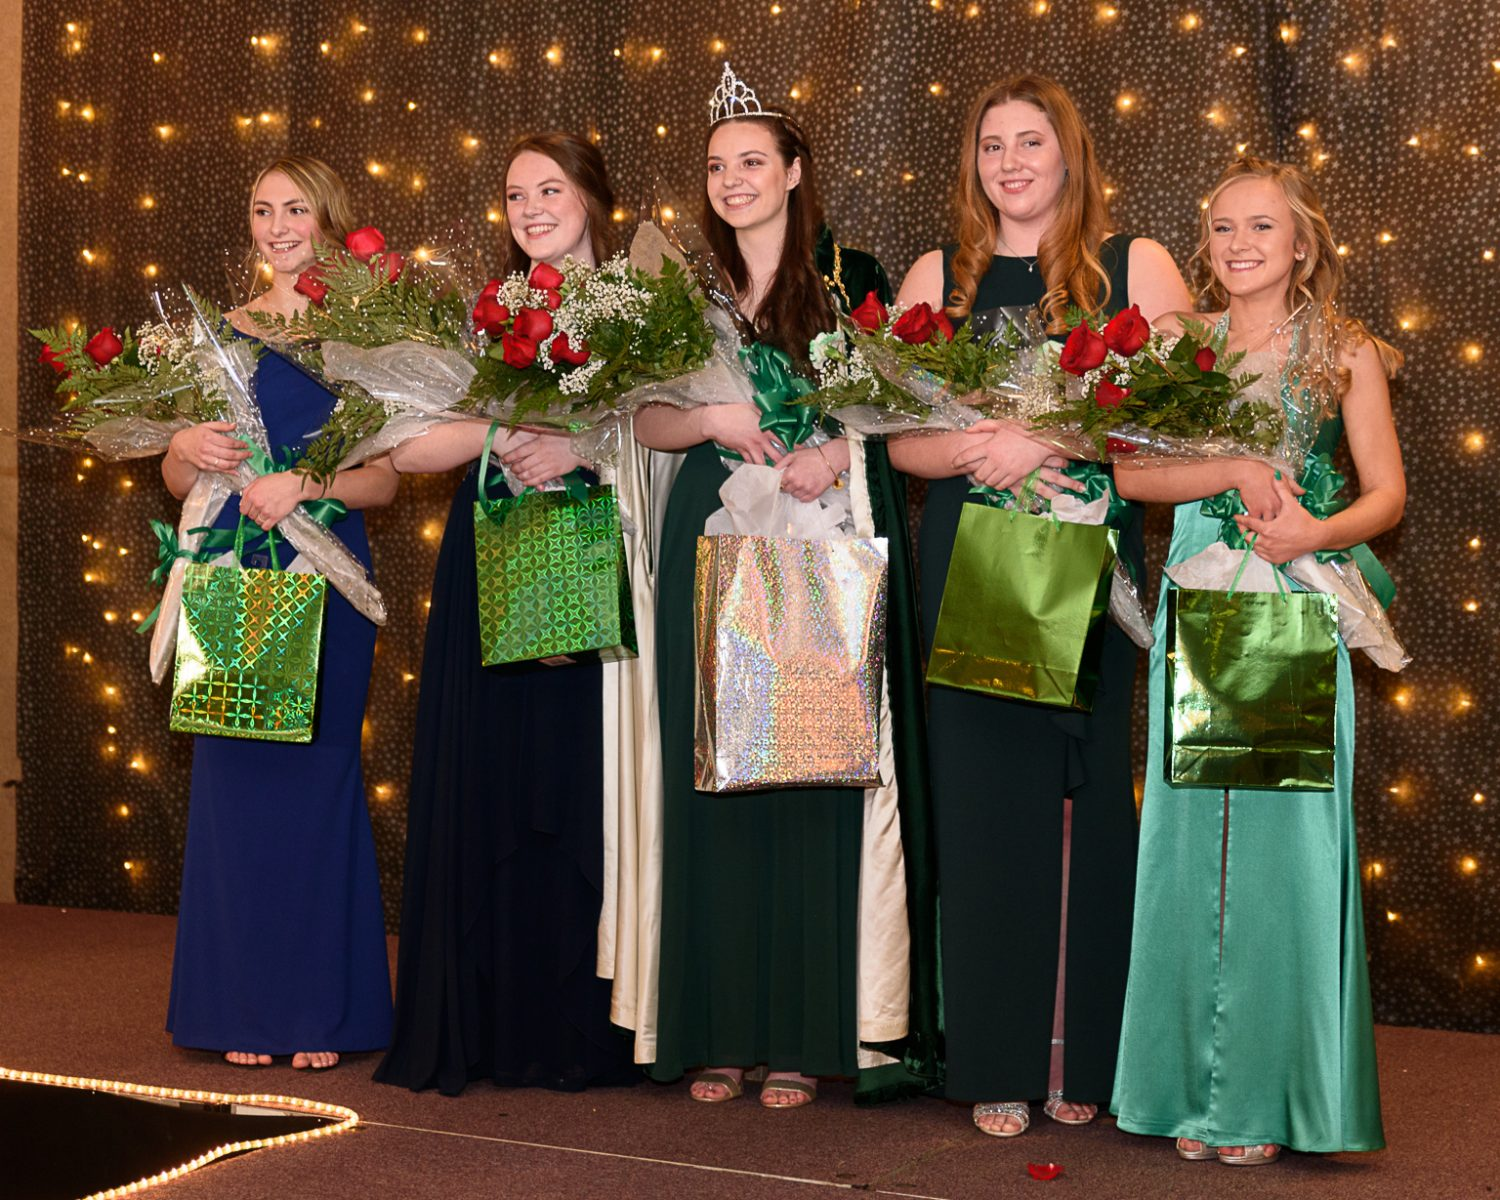 Westfield Ma Christmas 2020 Brigid Moriarty crowned 2020 Colleen | The Westfield News